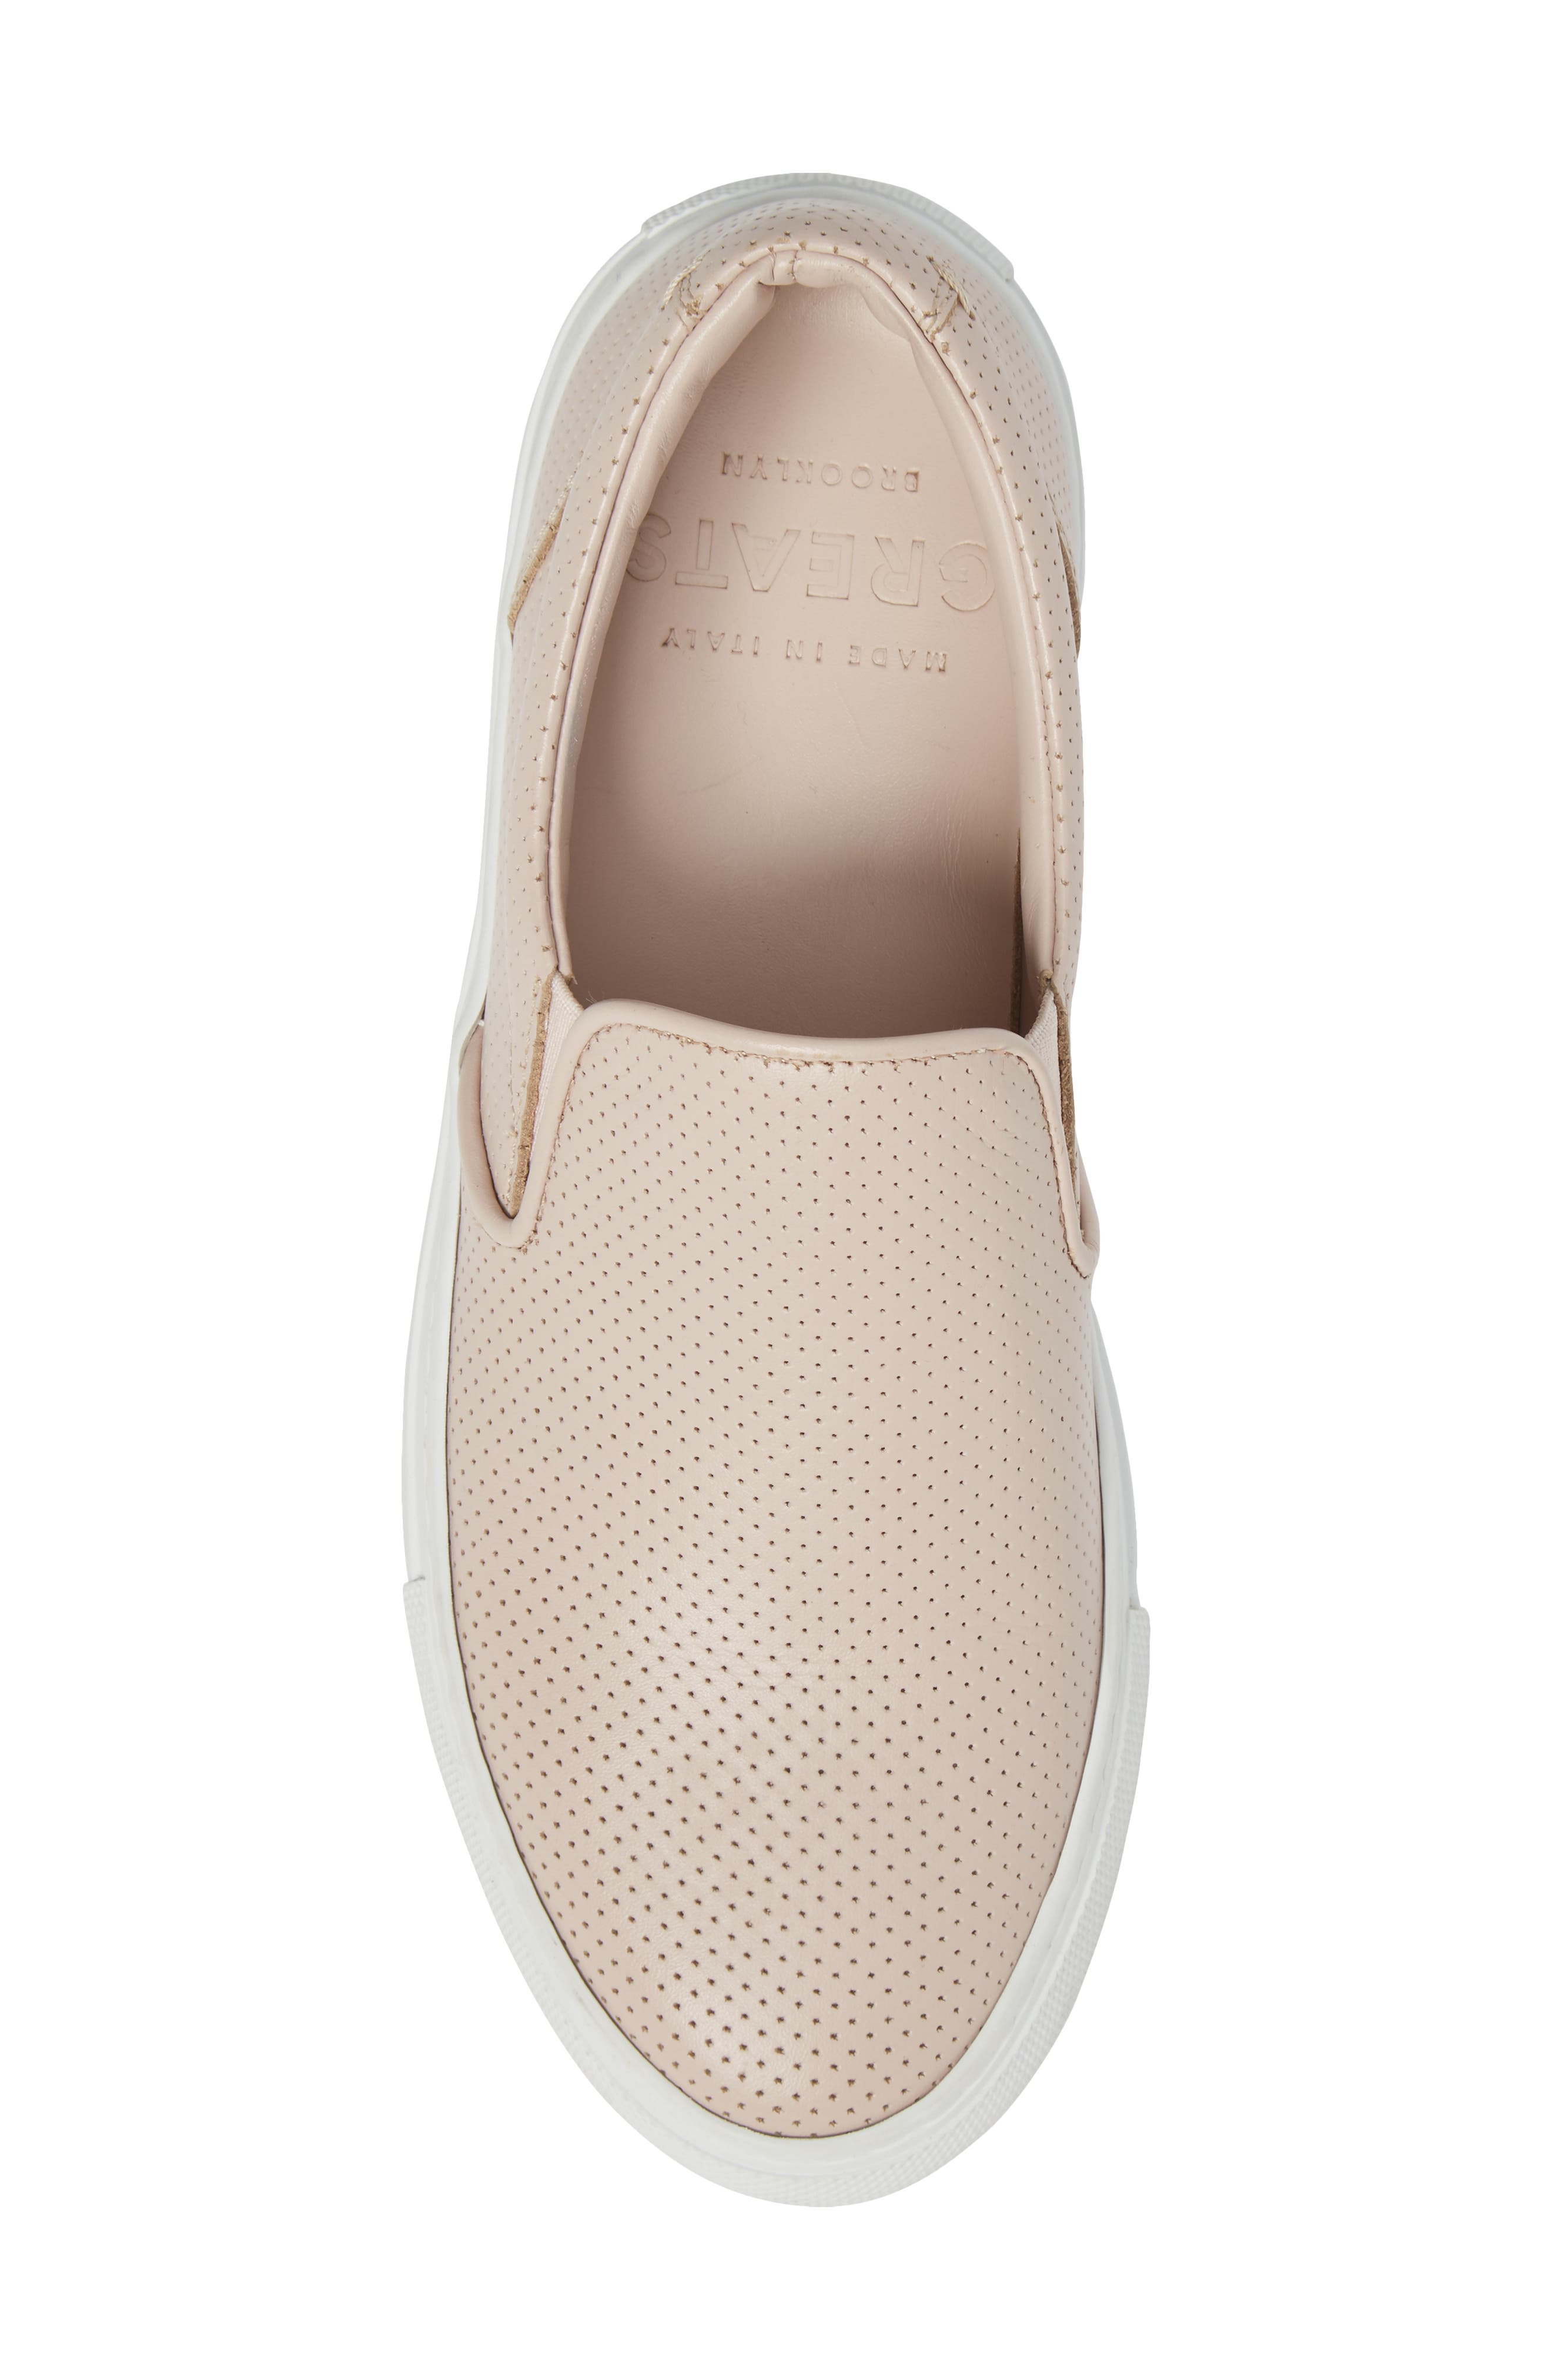 Wooster Slip-On Sneaker,                             Alternate thumbnail 5, color,                             Blush Perforated